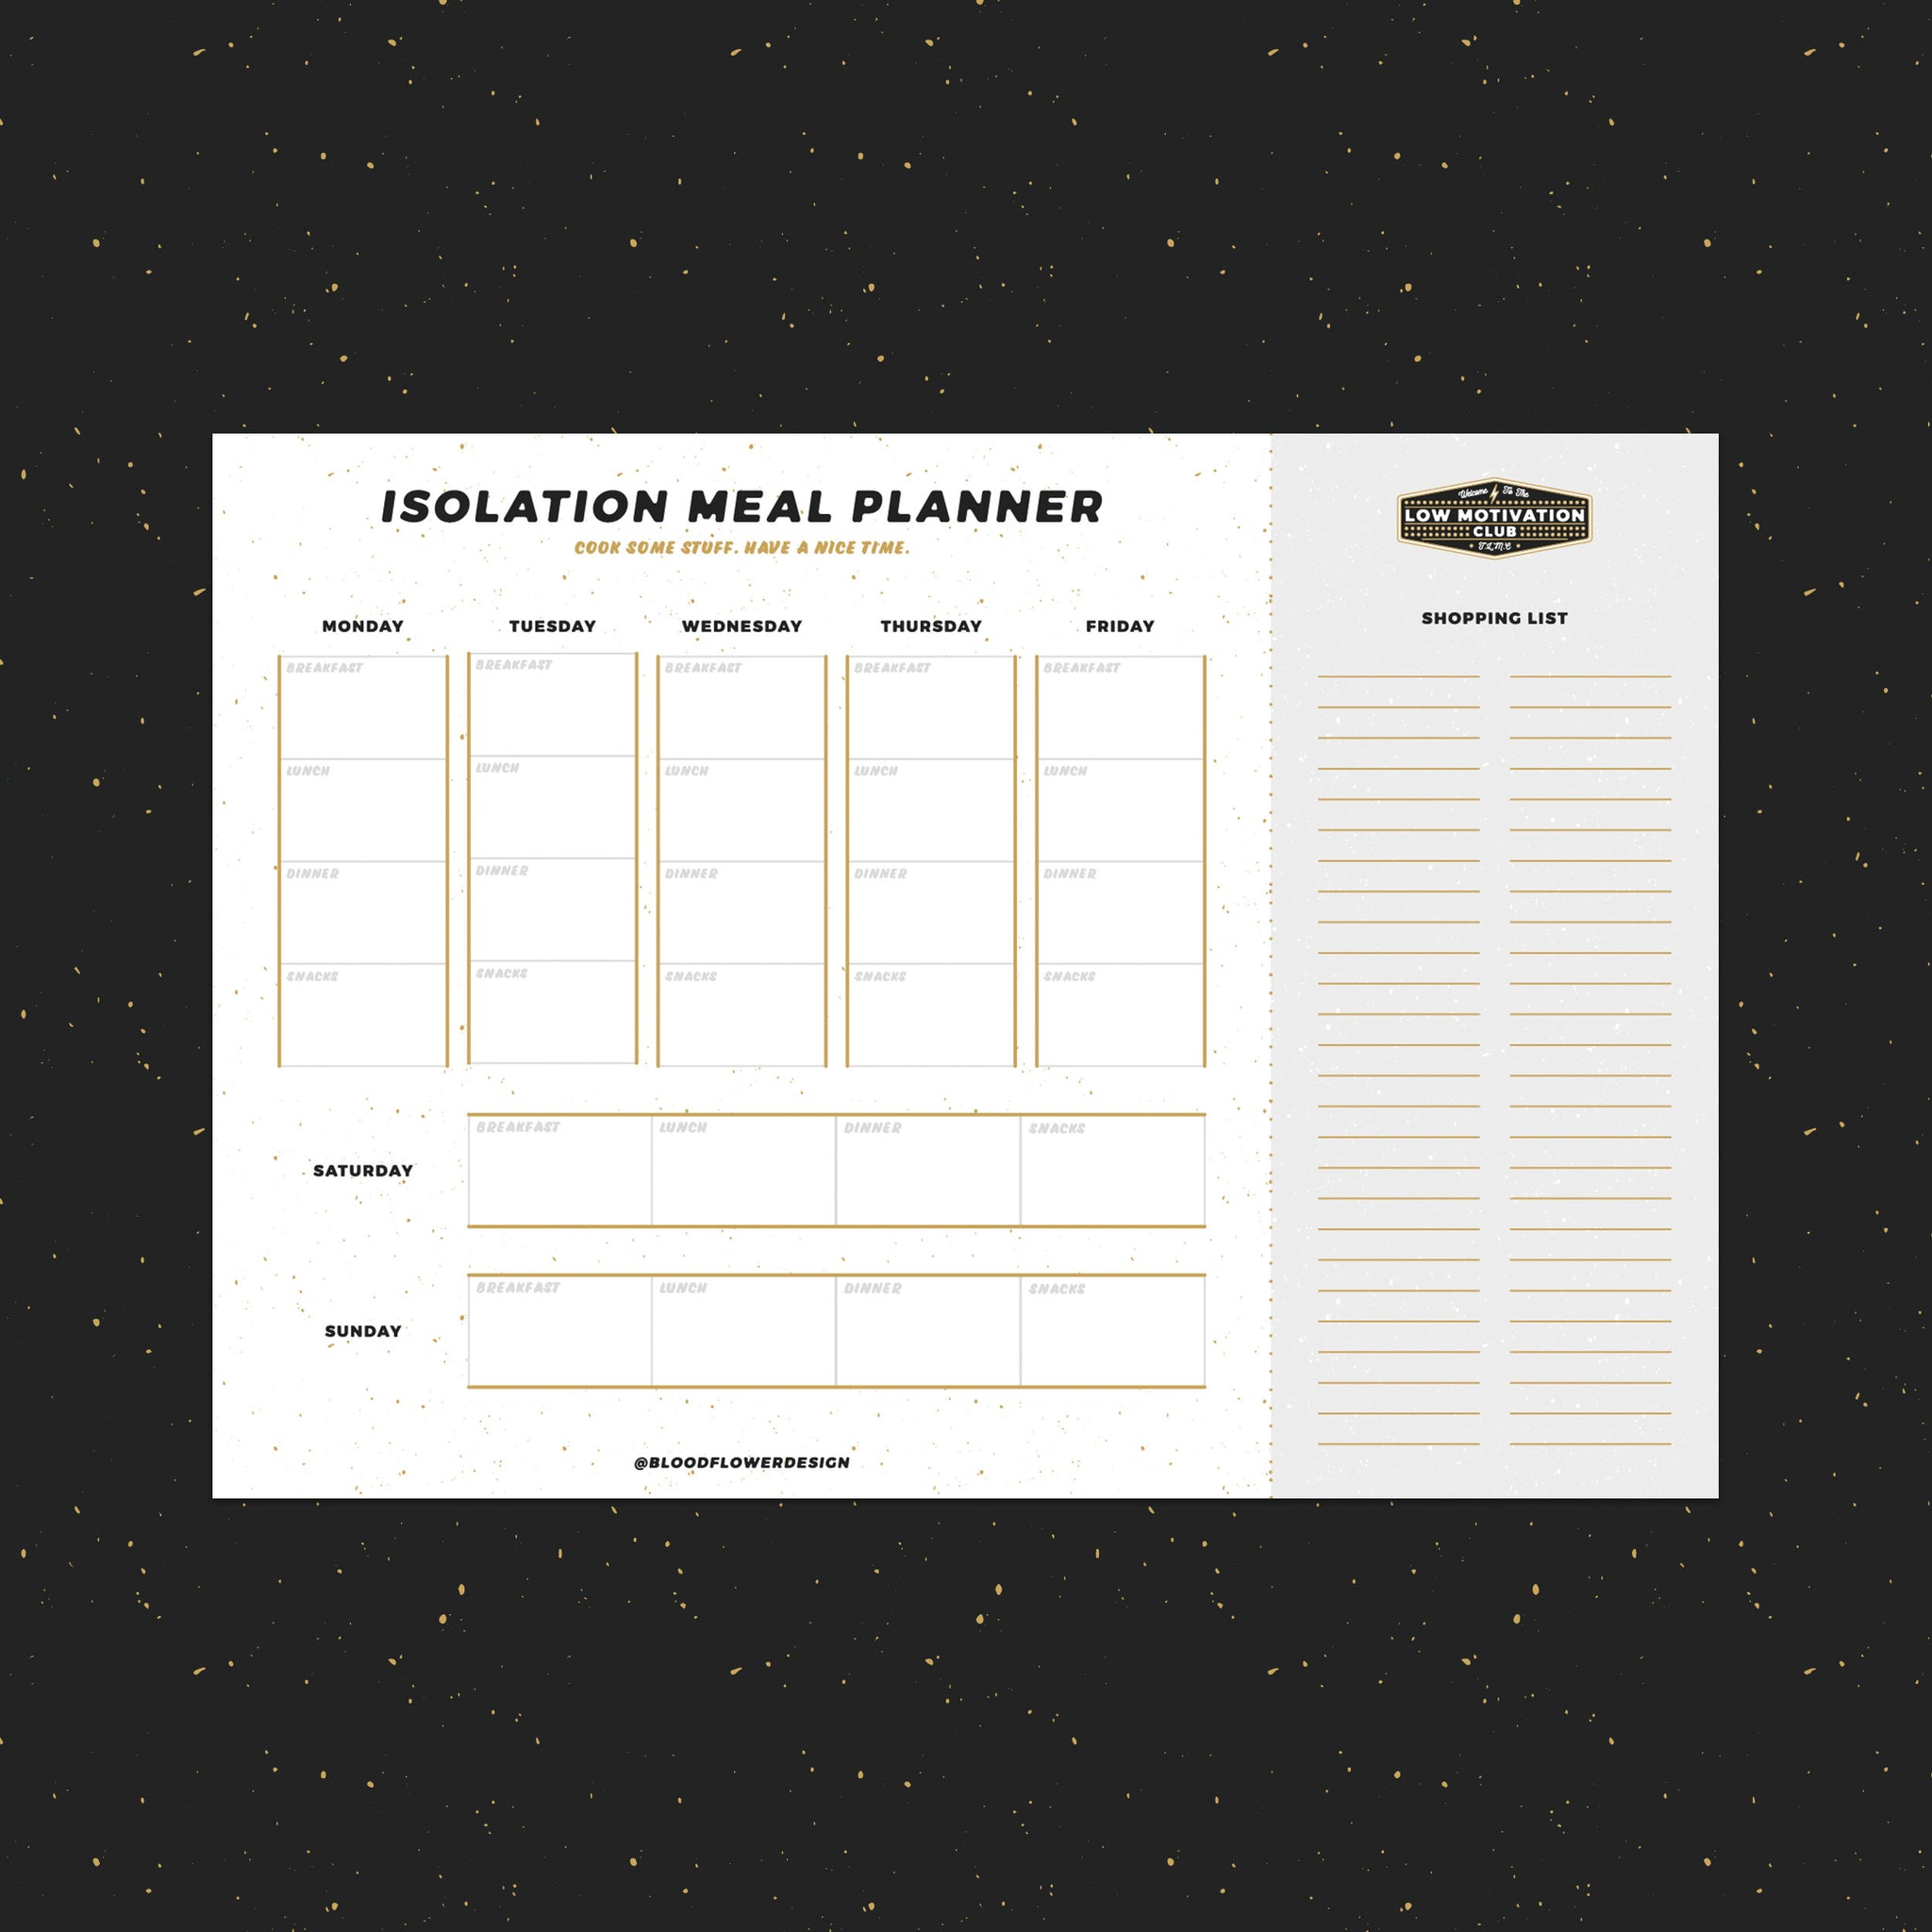 Low Motivation Club Isolation Meal Planner